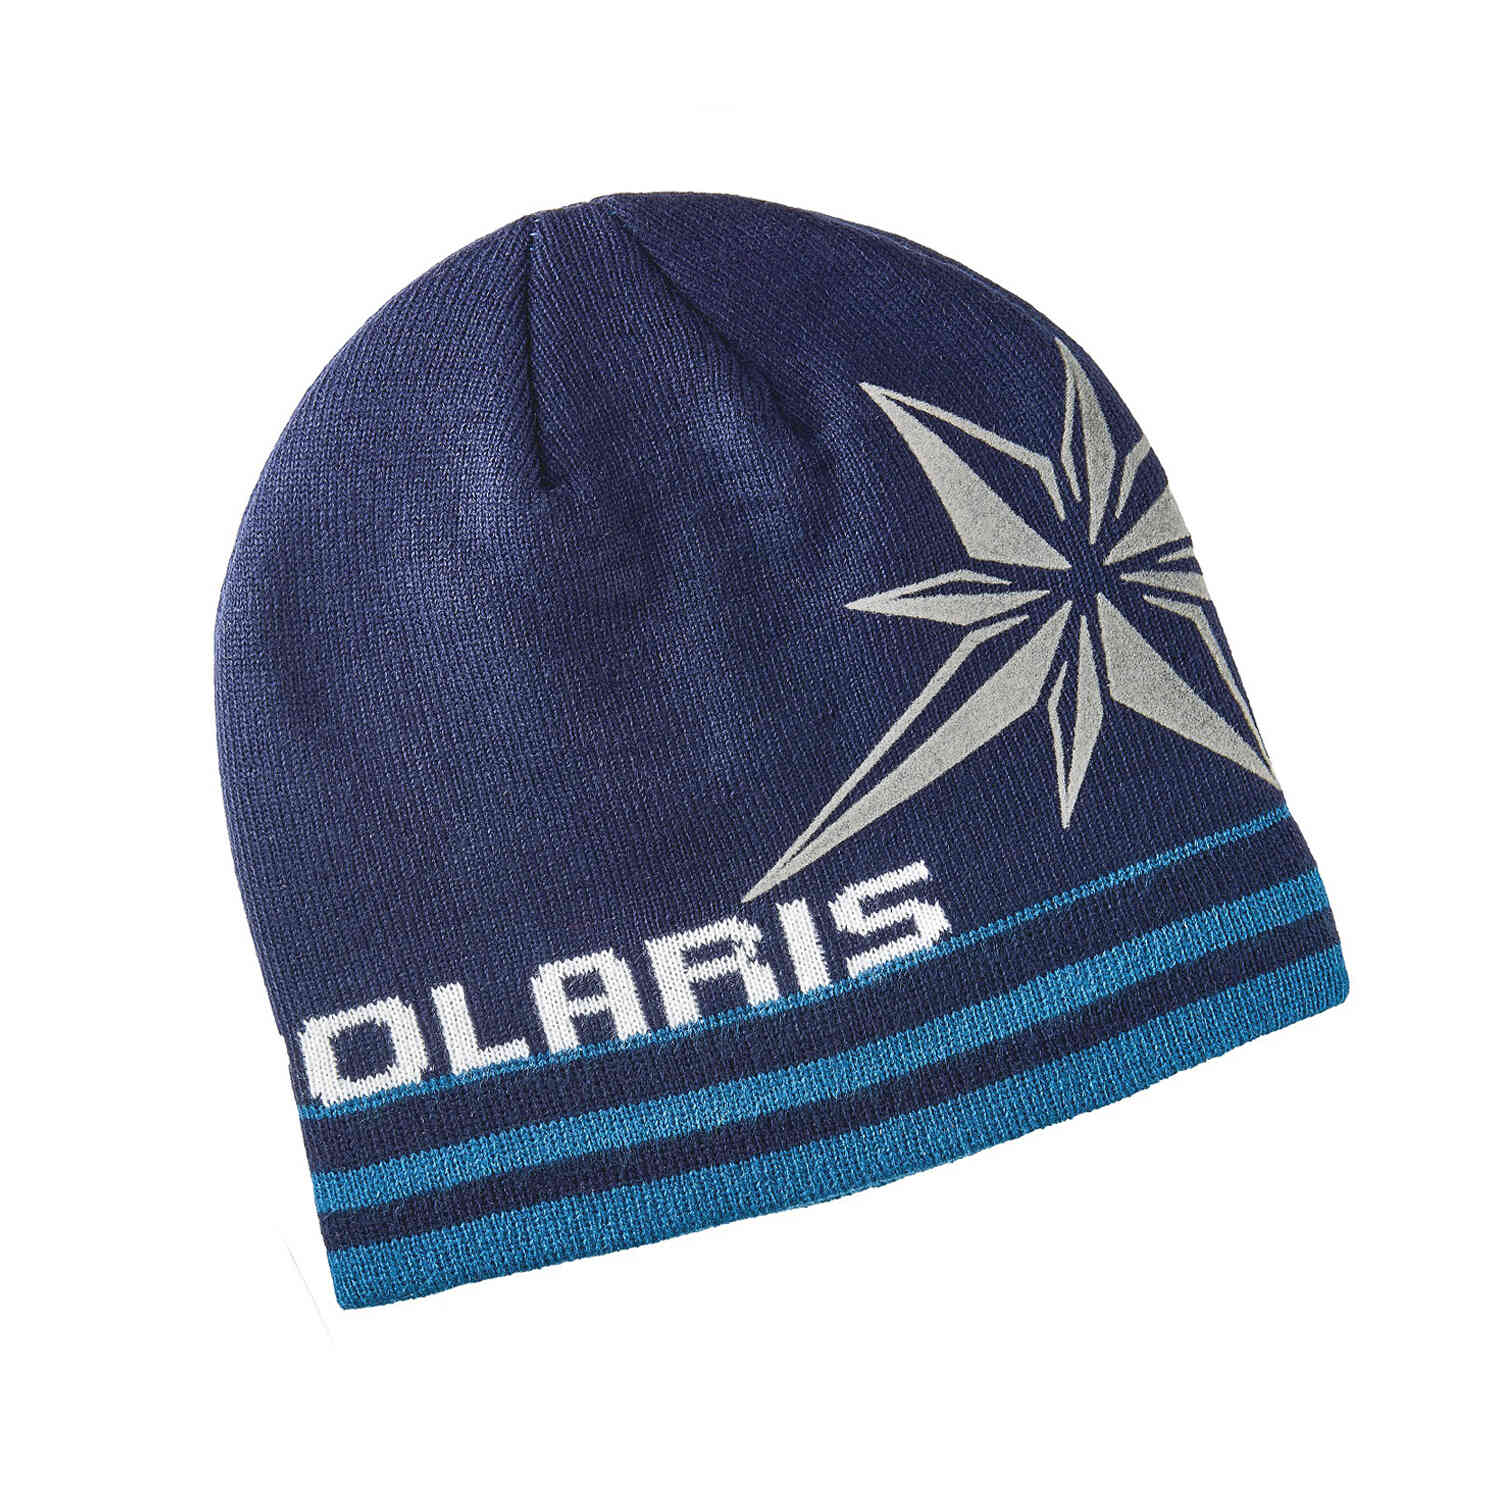 Men's Northern Star Beanie with Polaris® Logo, Navy